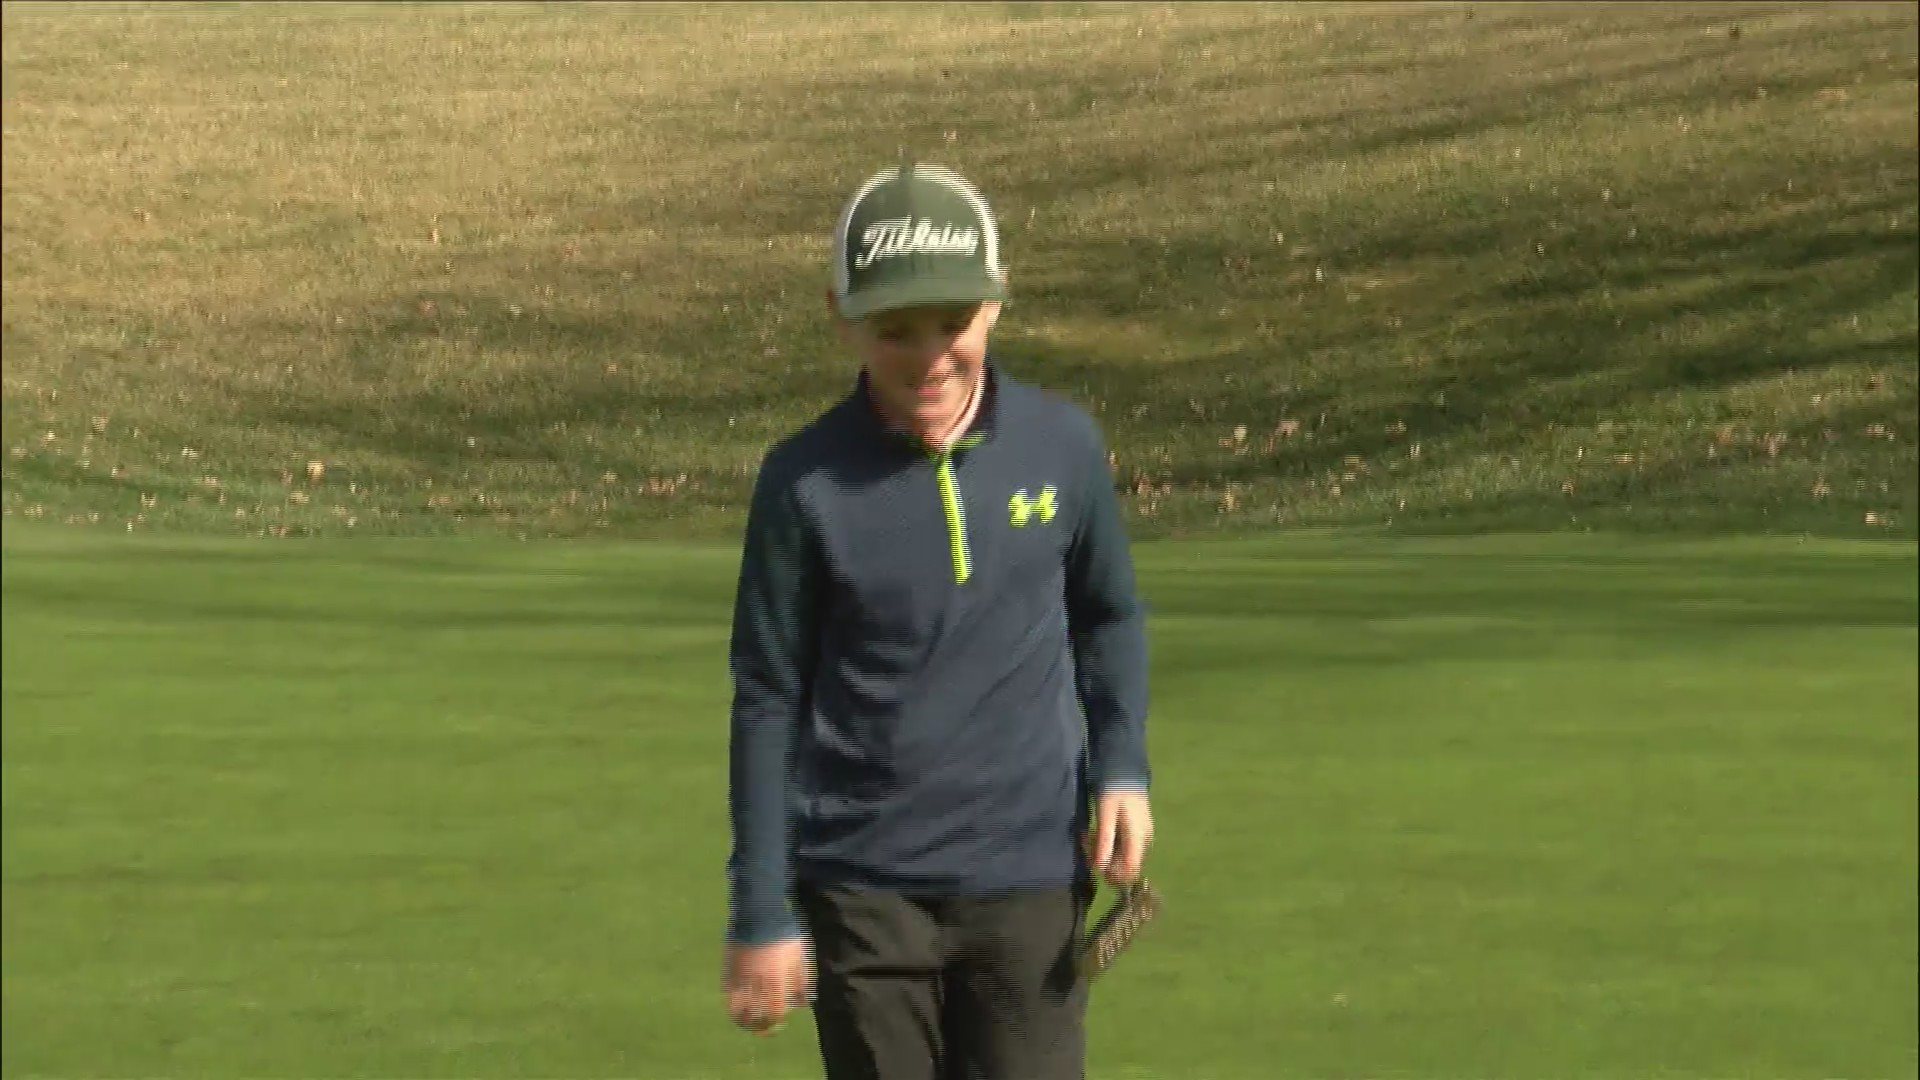 Isaac Rumler going to Drive, Chip and Putt